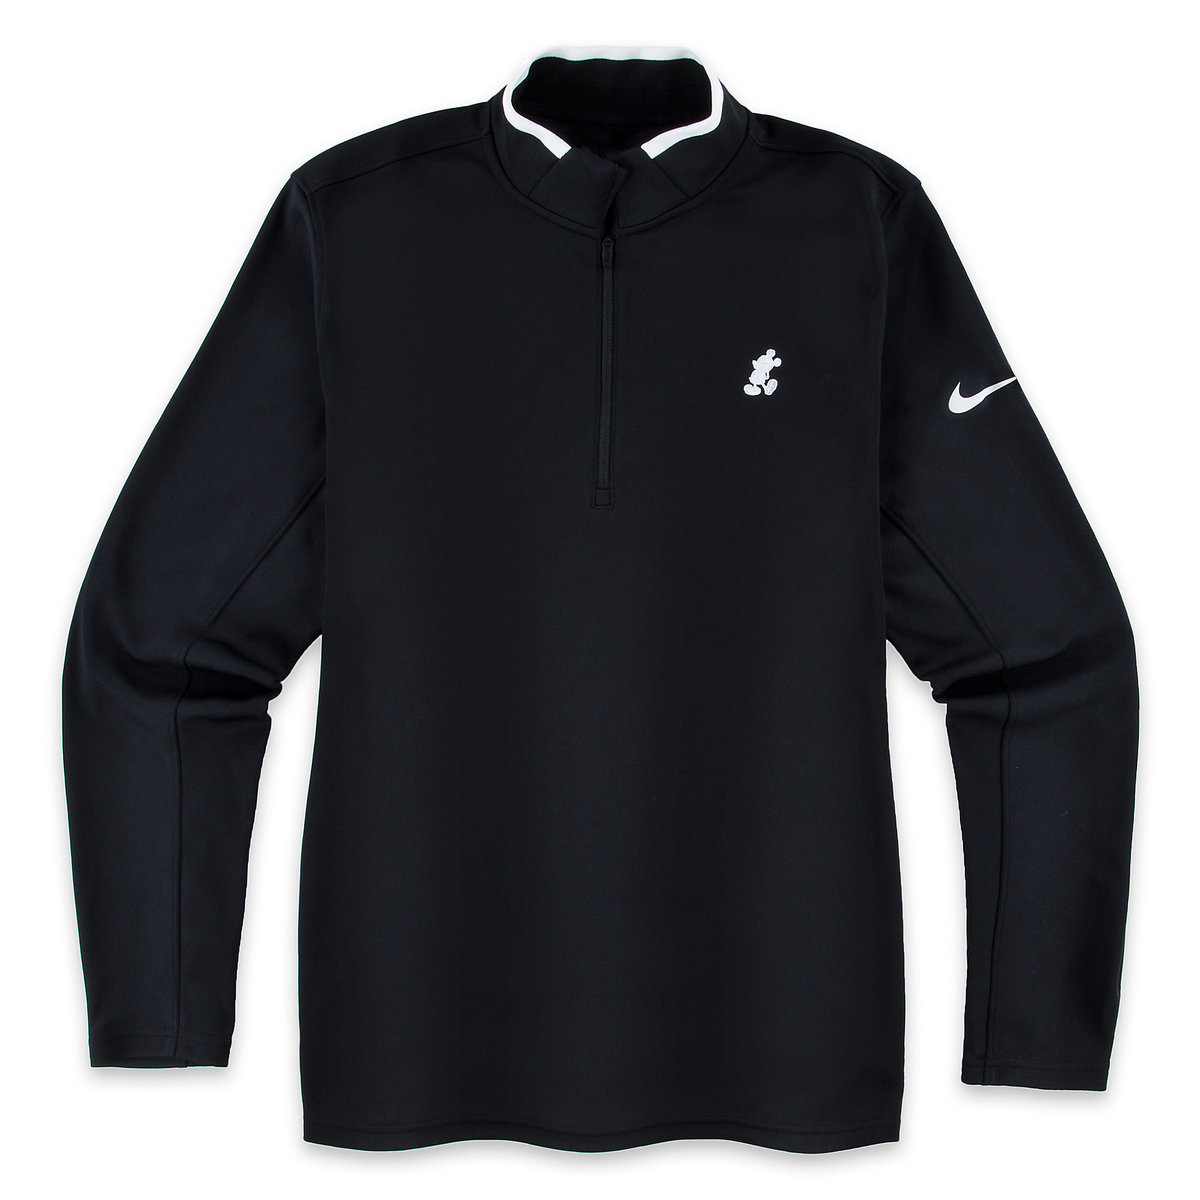 73857b26 Product Image of Mickey Mouse Therma-Fit Pullover for Men by NikeGolf - Navy  #